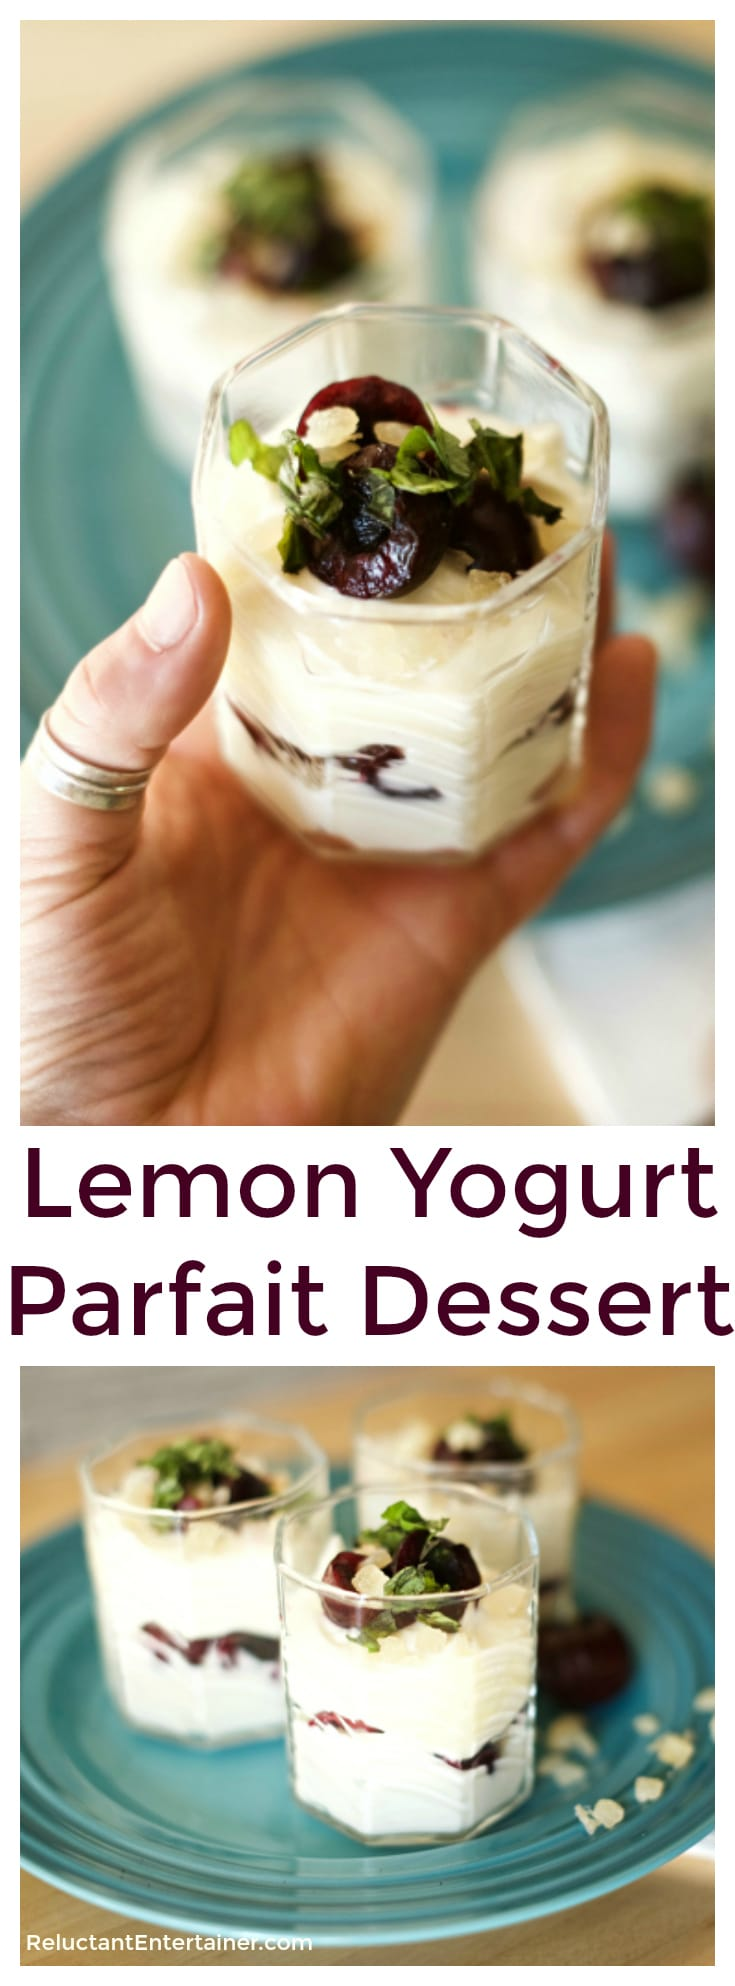 This Lemon Yogurt Parfait dessert is delicious for breakfast, but is so cheesecakey rich and sweet, it can easily pass as dessert for dinner!